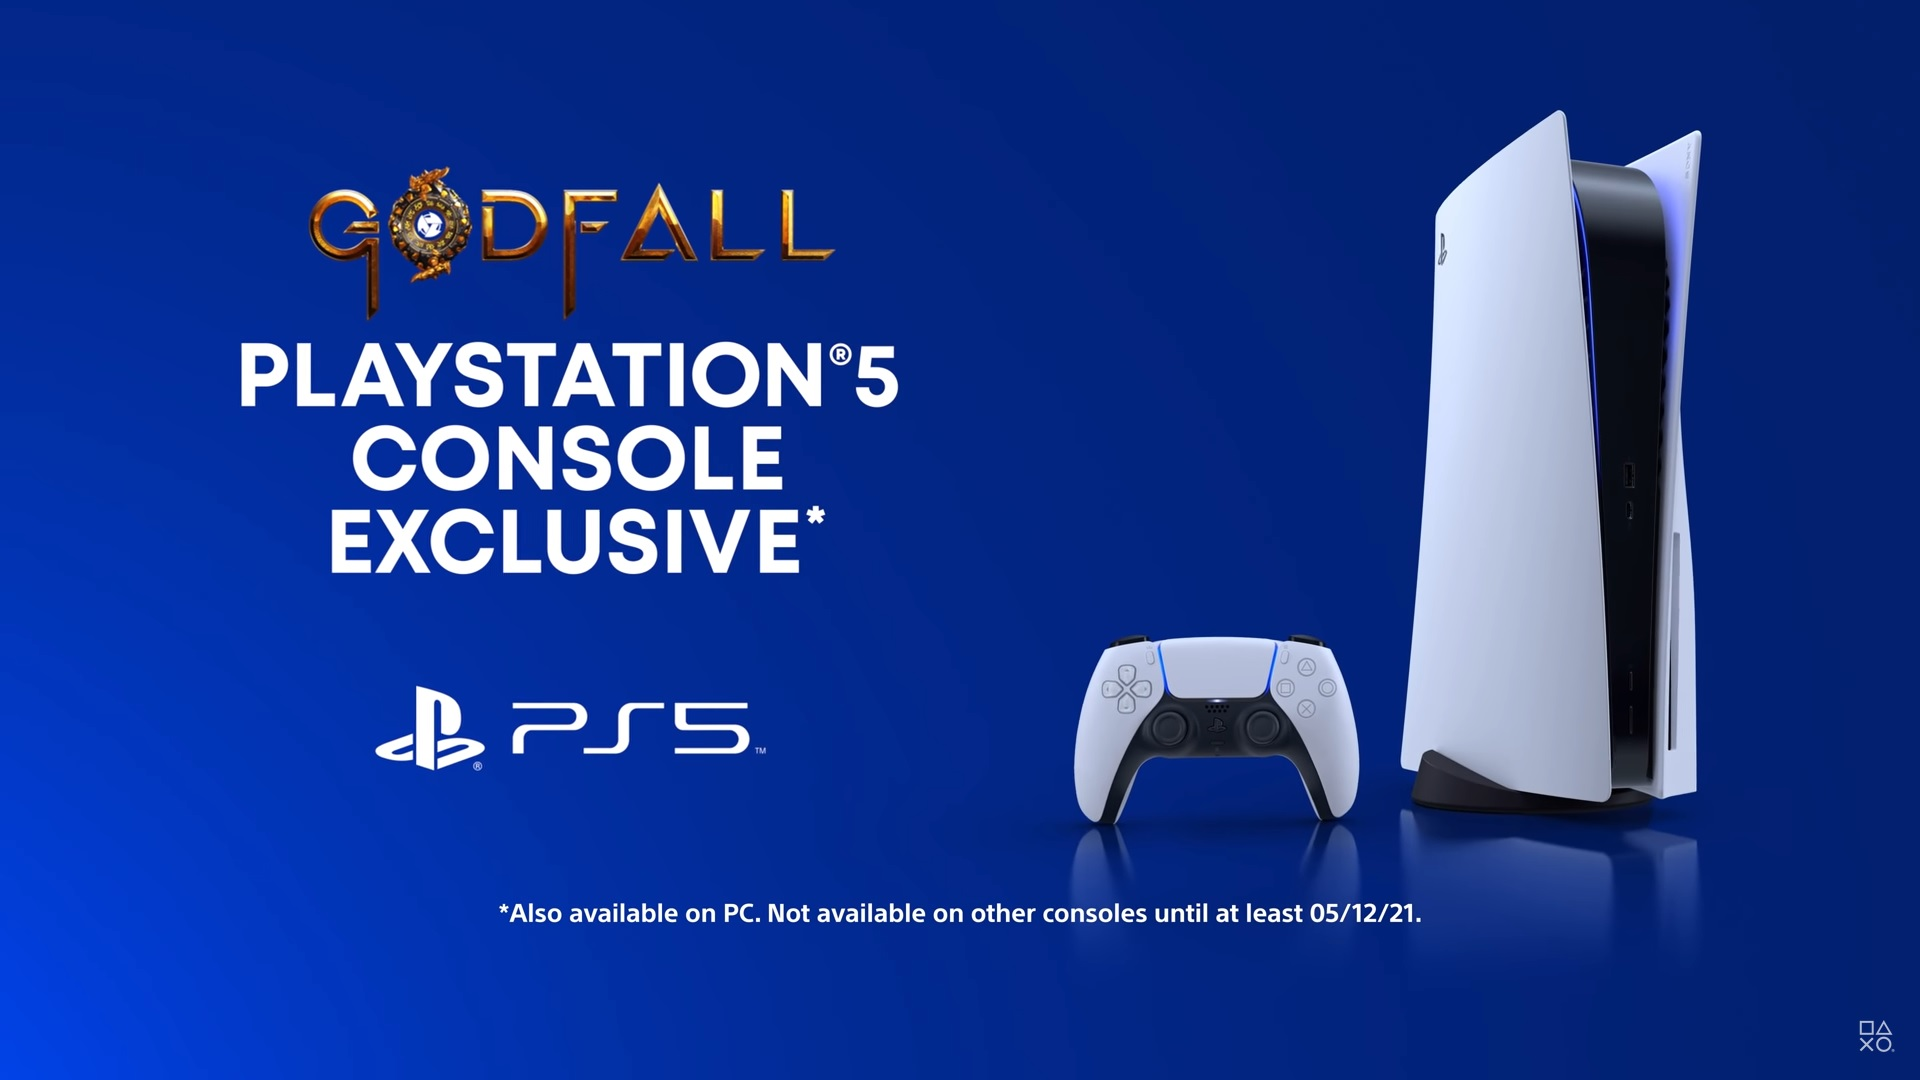 Godfall will be a console exclusive on PS5 for six months